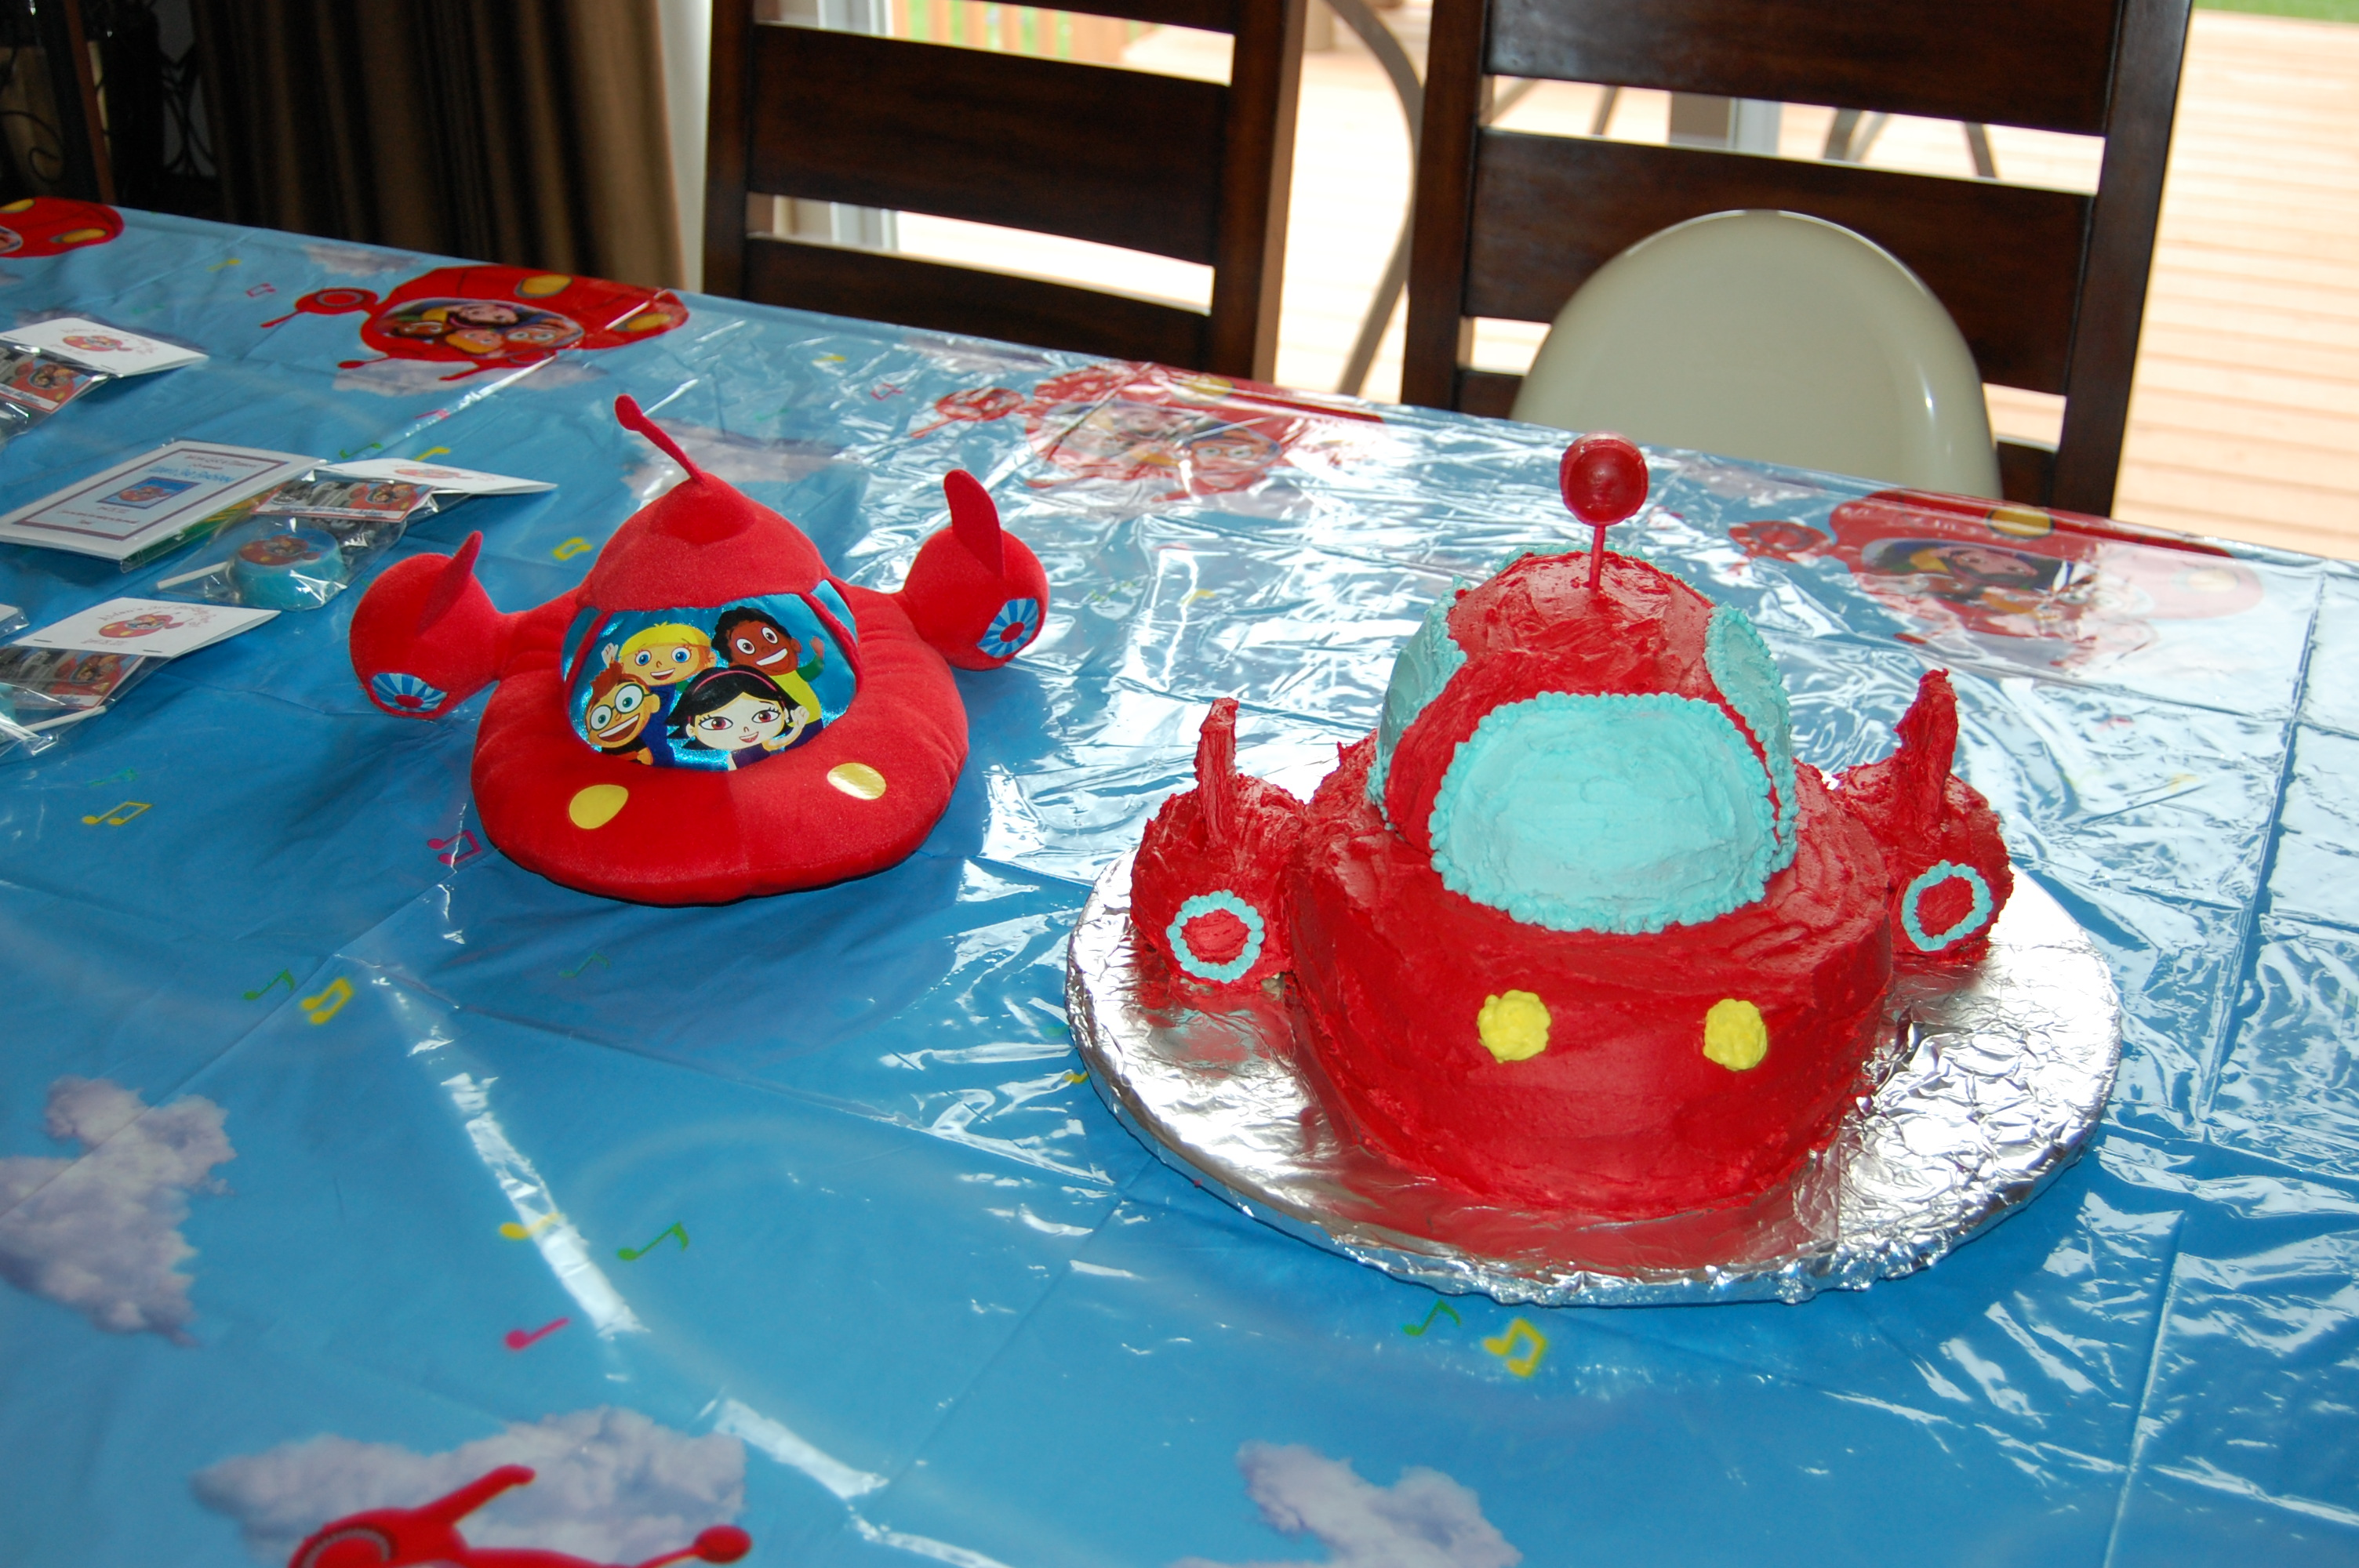 Tremendous Toddler Tuesday Making A Little Einsteins Rocket Cake Funny Birthday Cards Online Inifofree Goldxyz